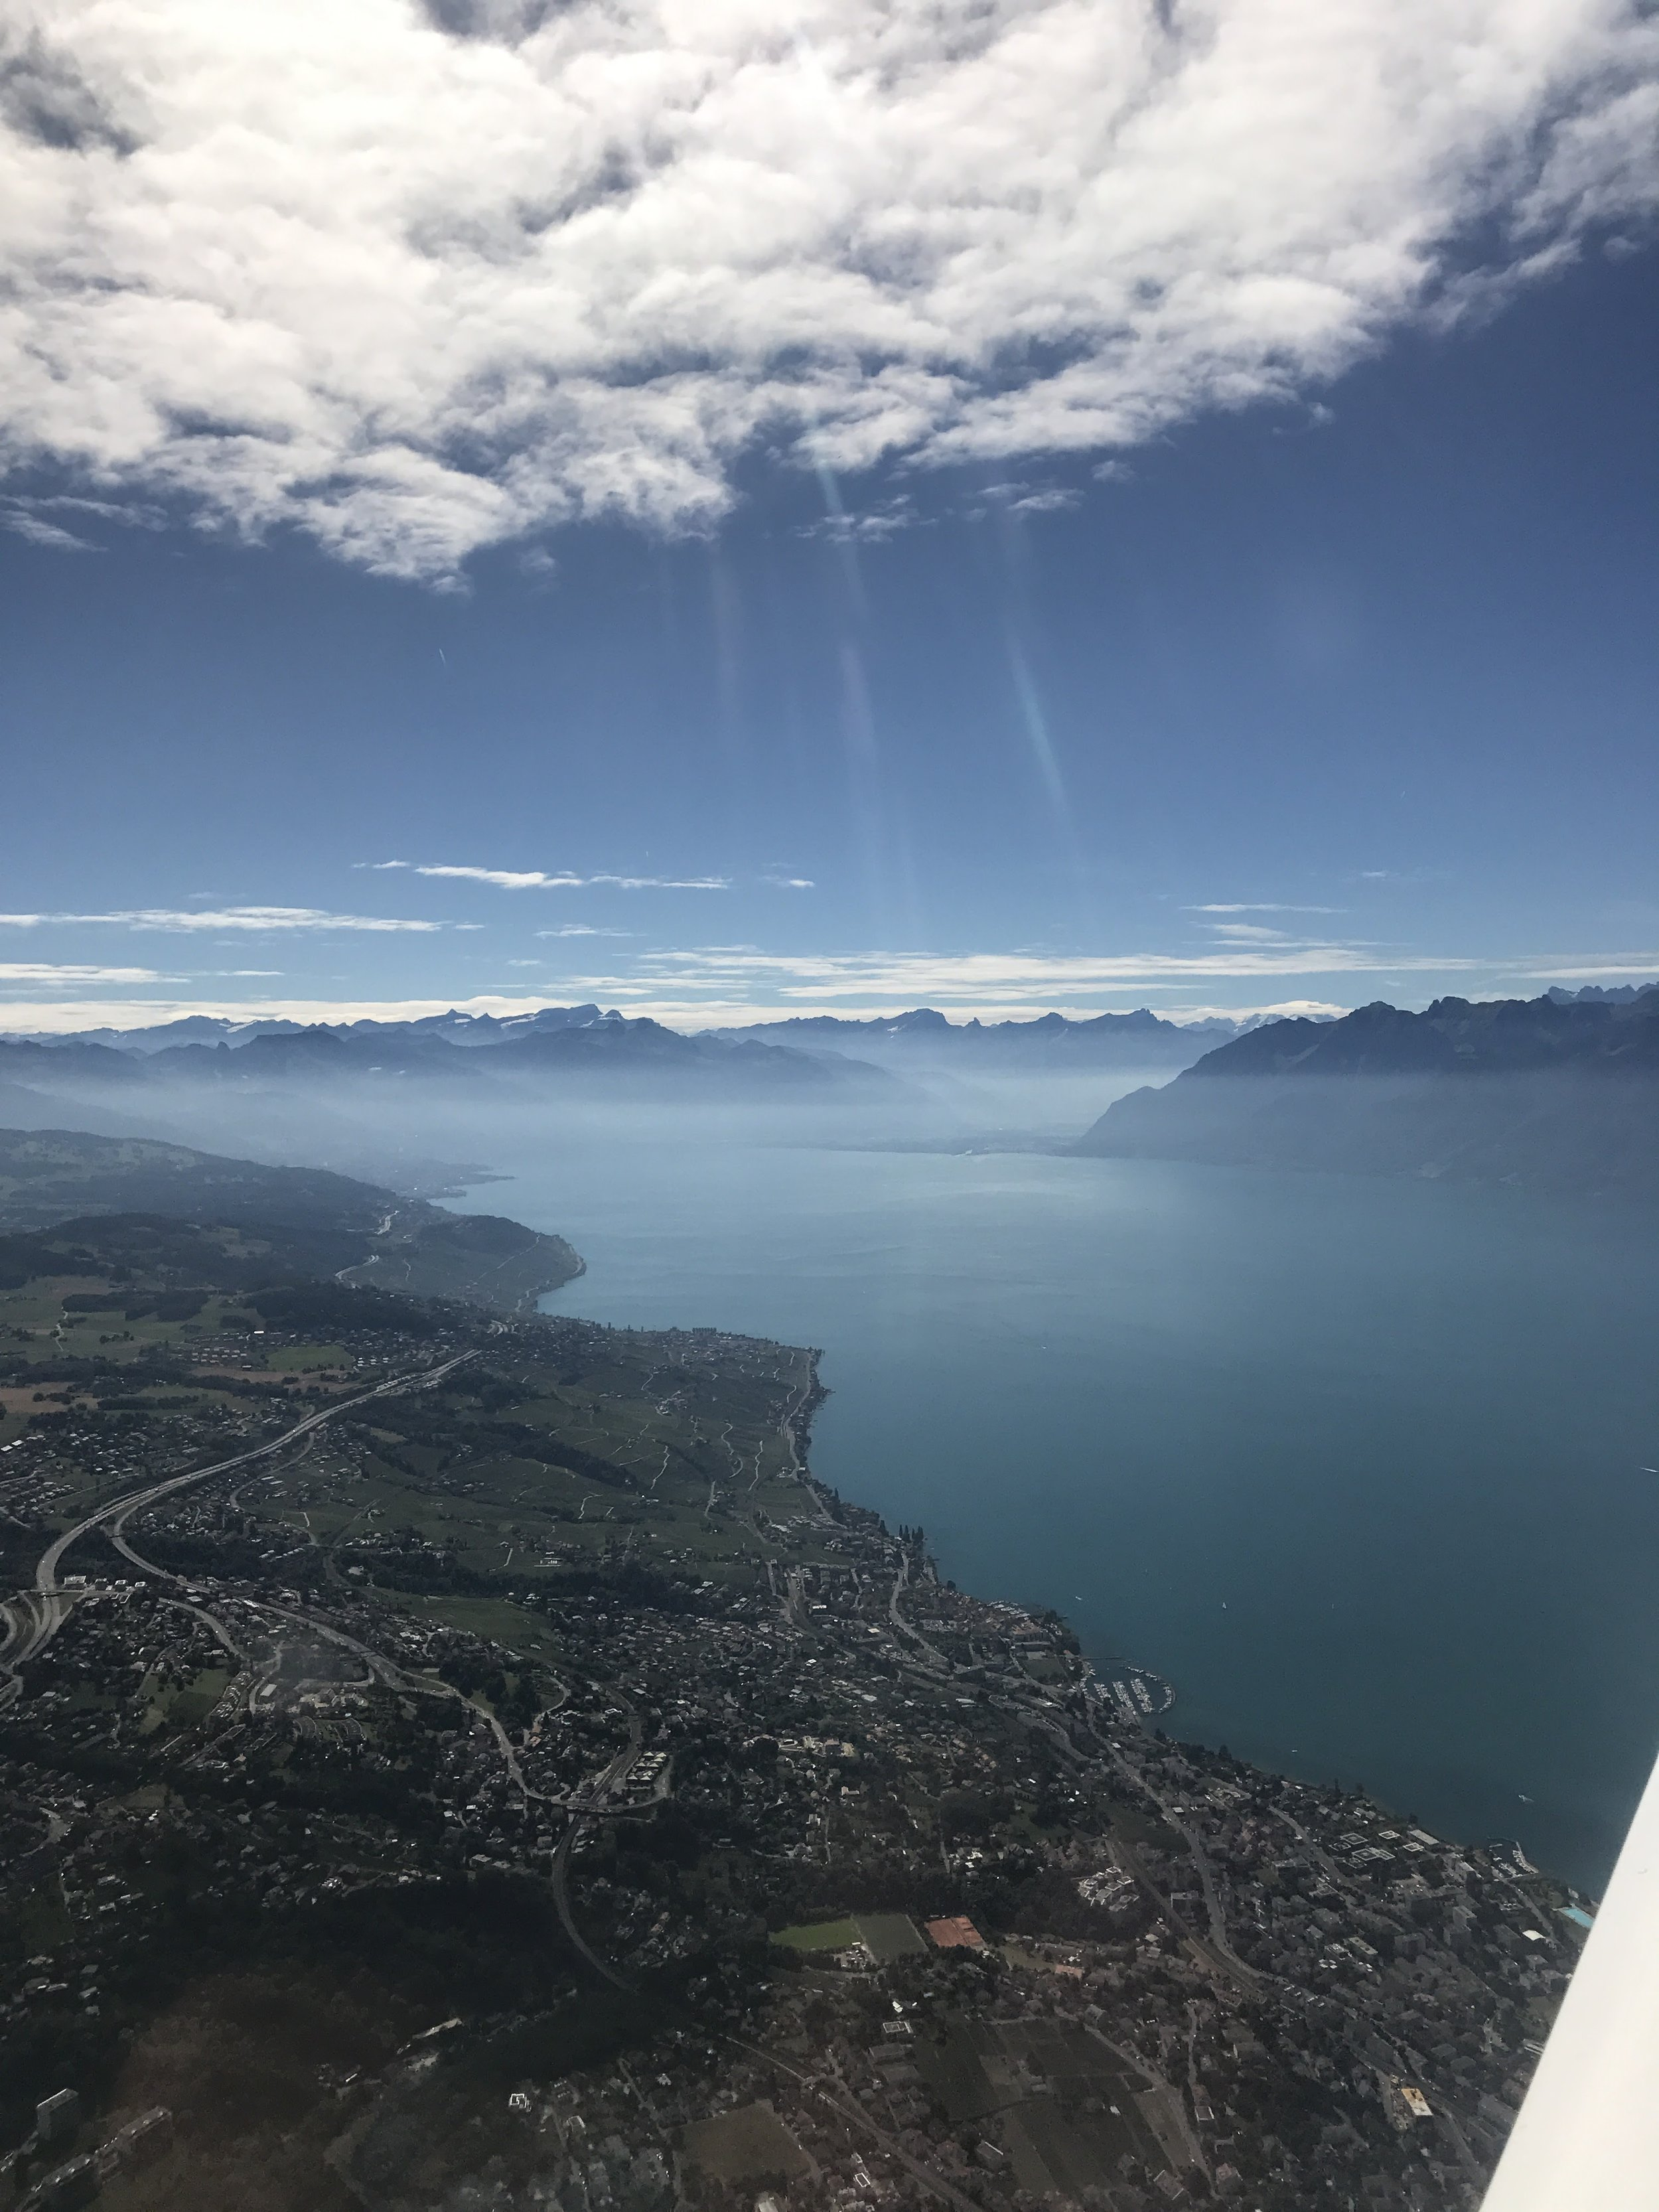 - Lake Geneva, looking to the East